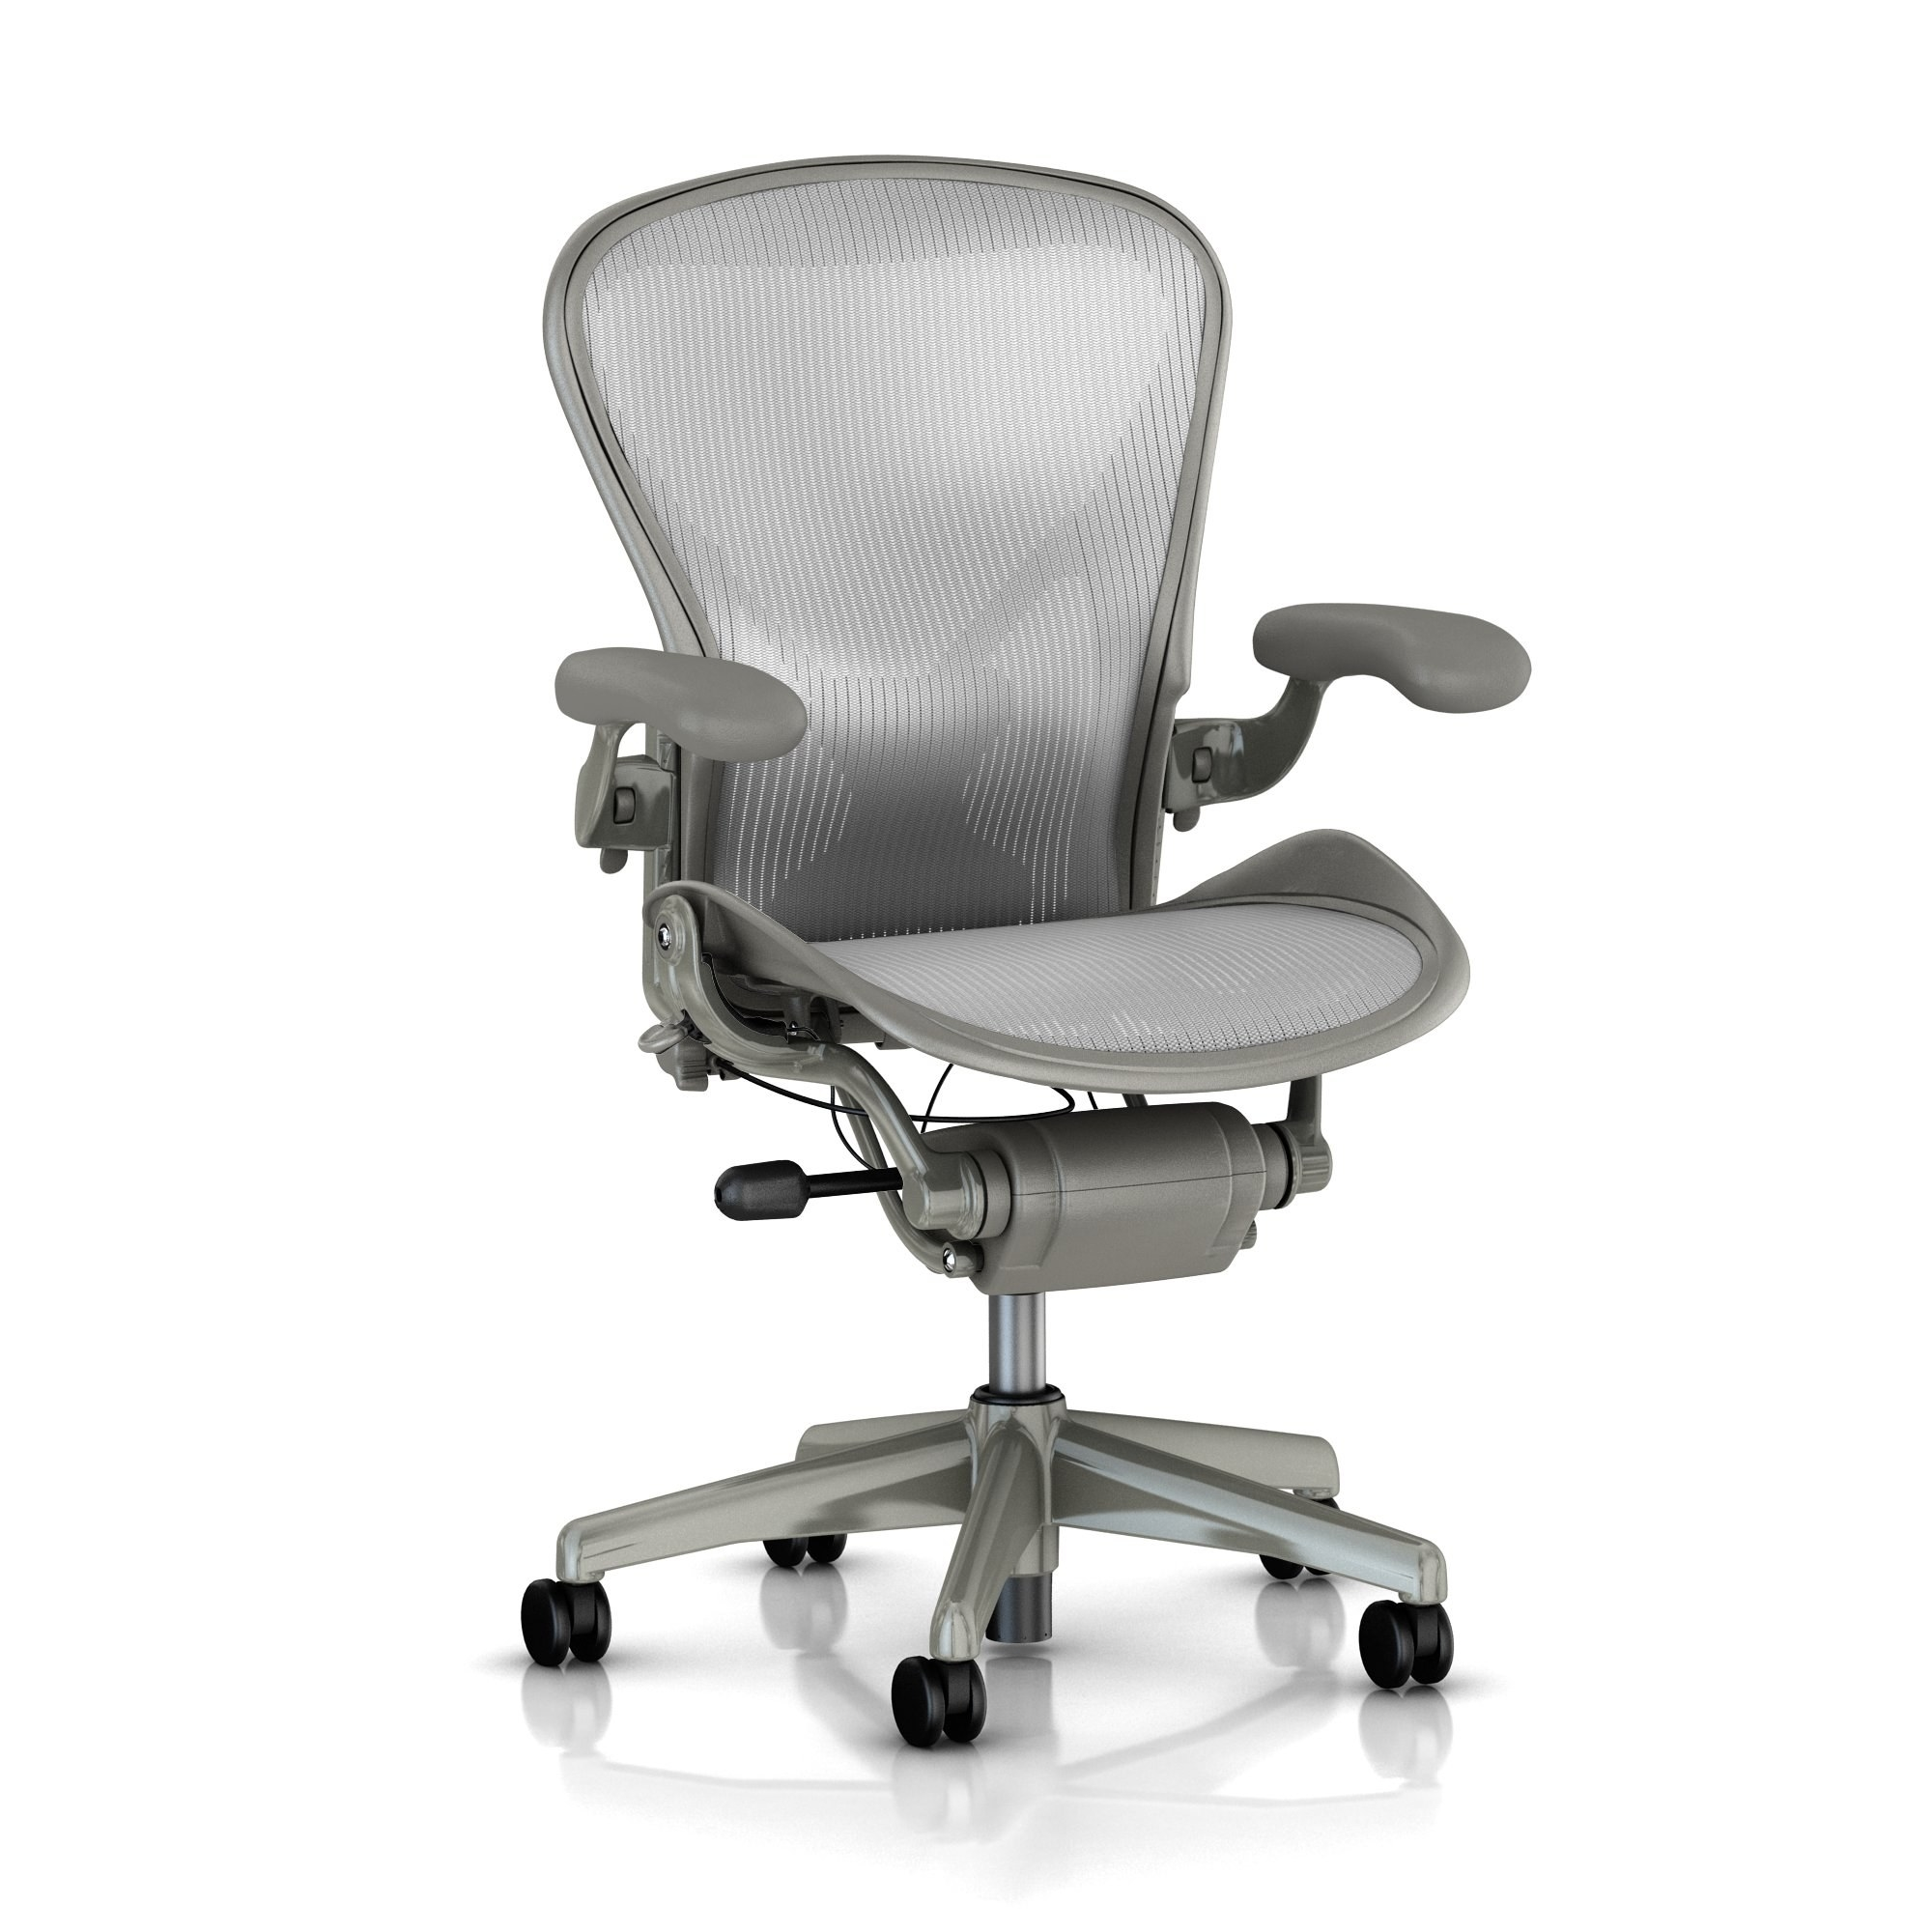 office furniture computer chairs wheels chair best gaming desk appealing architecture interior design with for lower